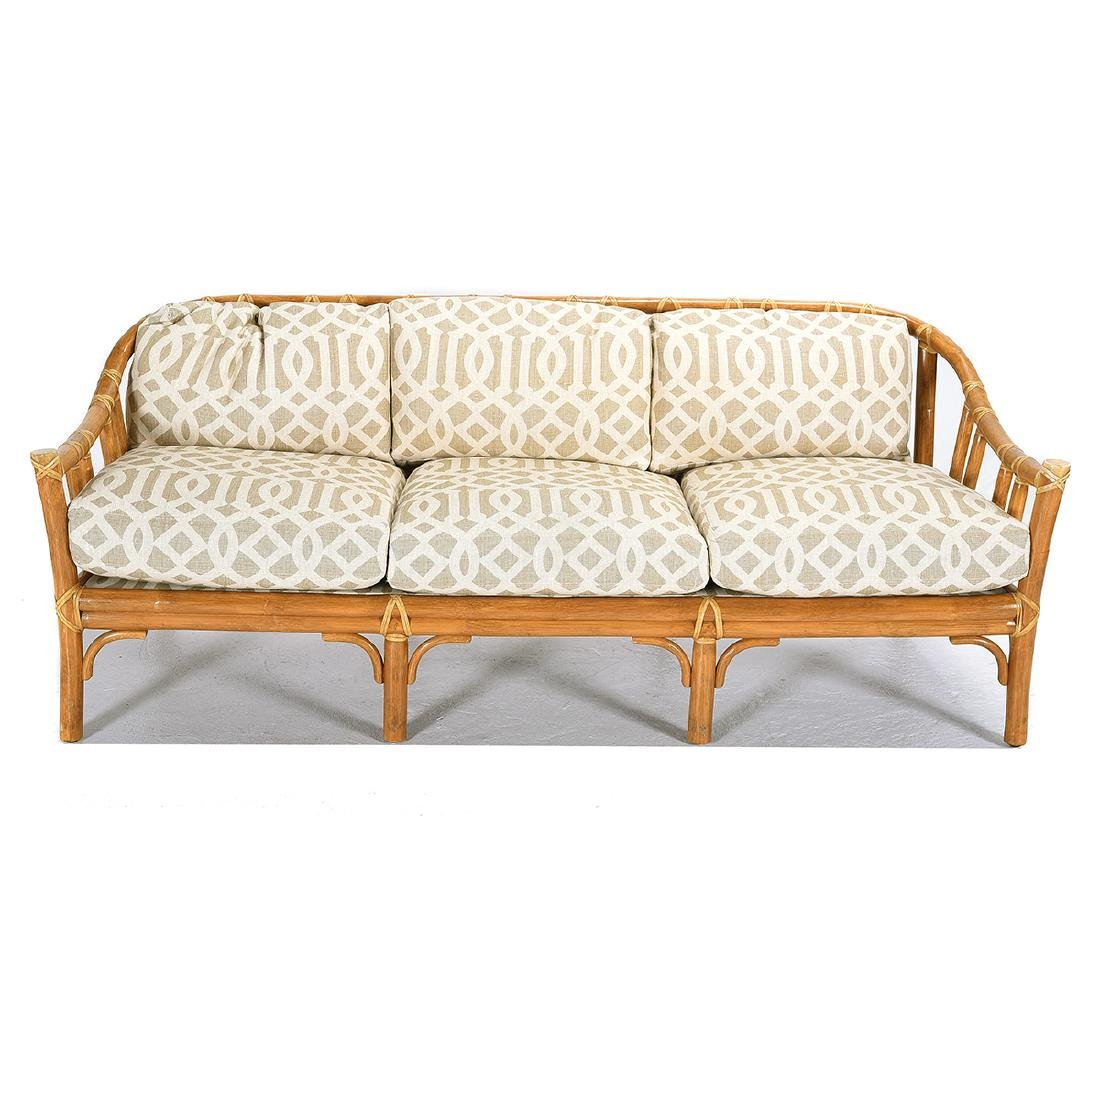 Silvered Contemporary Wood Settee Caned Seat